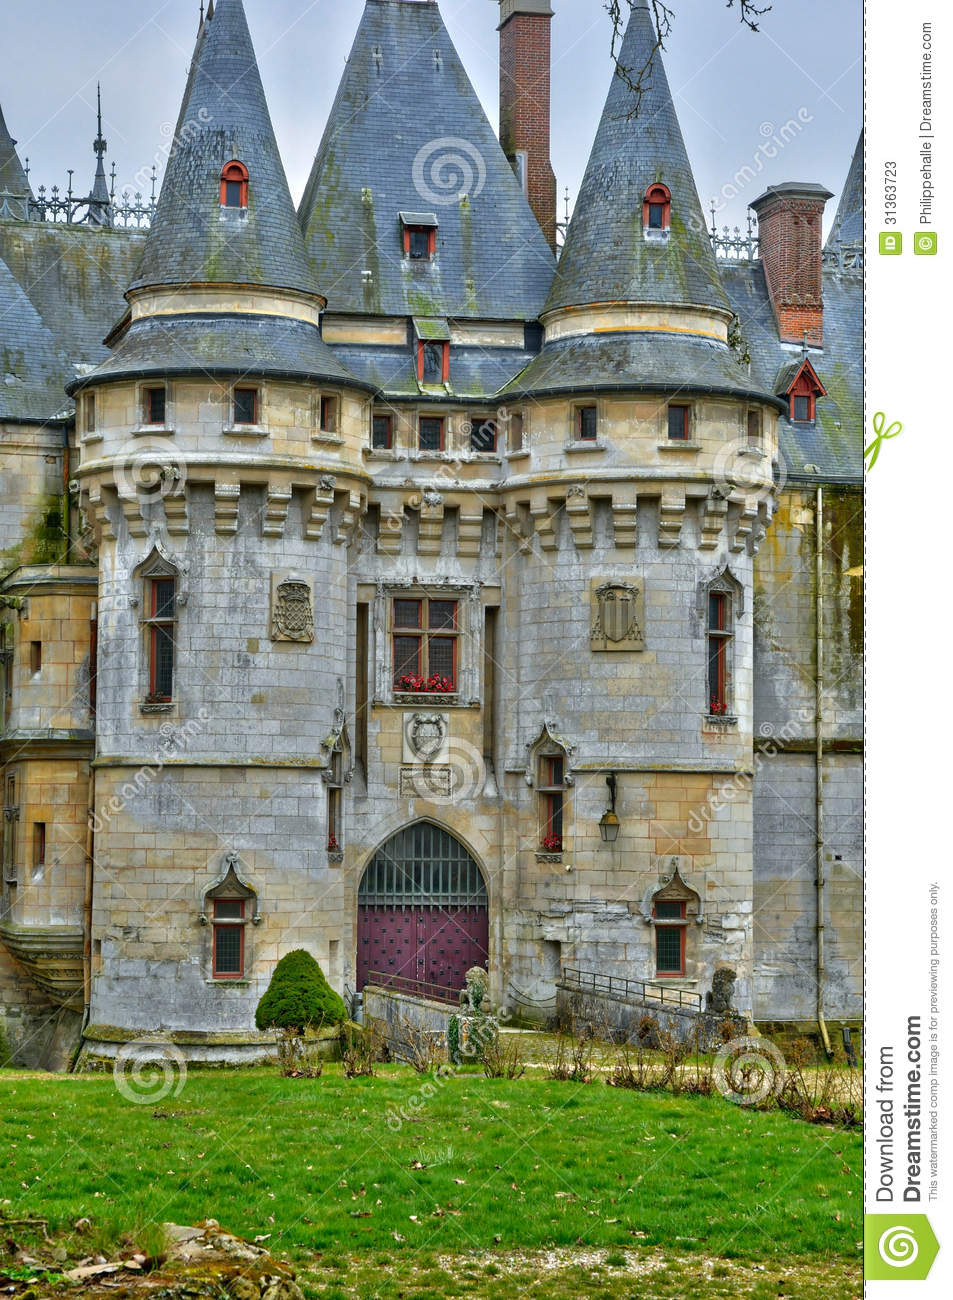 la francia il castello di vigny in val d oise immagine stock immagine di monumento storico. Black Bedroom Furniture Sets. Home Design Ideas